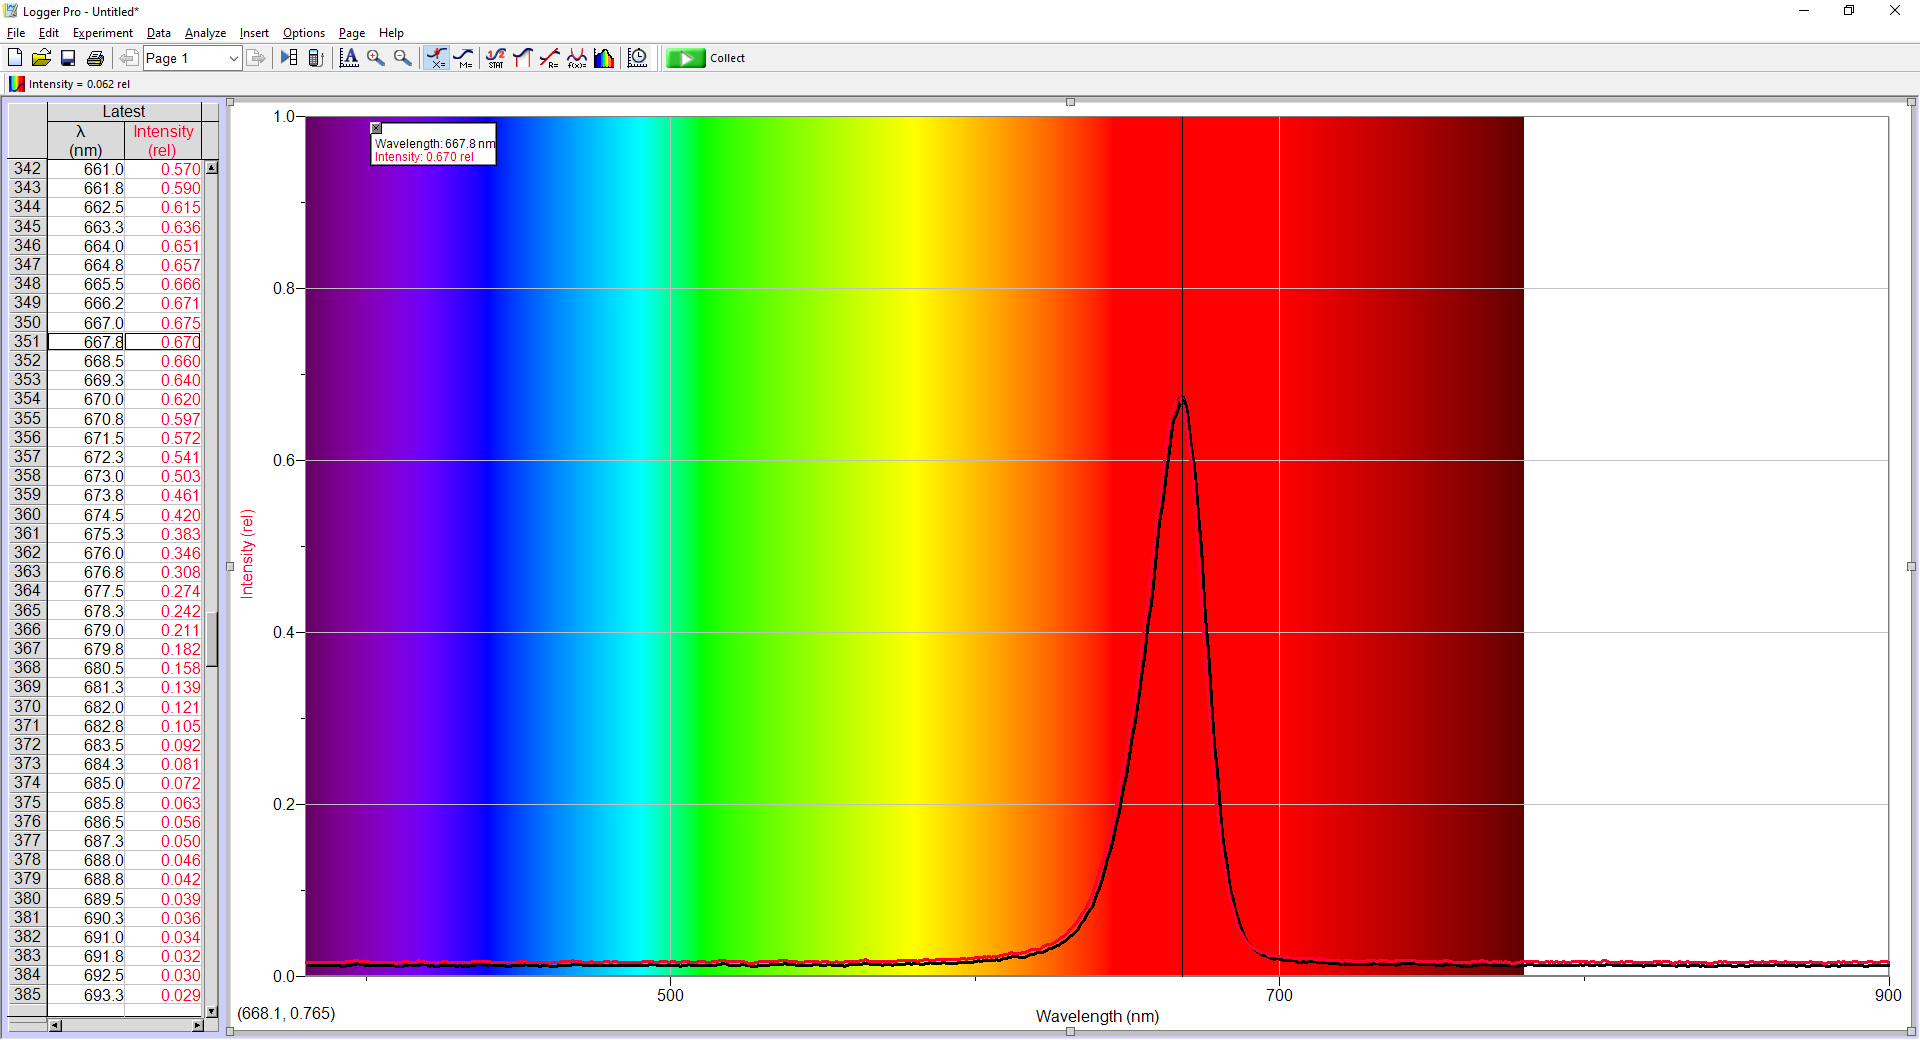 Amzcool red light device tested 670 nm red light spectrum